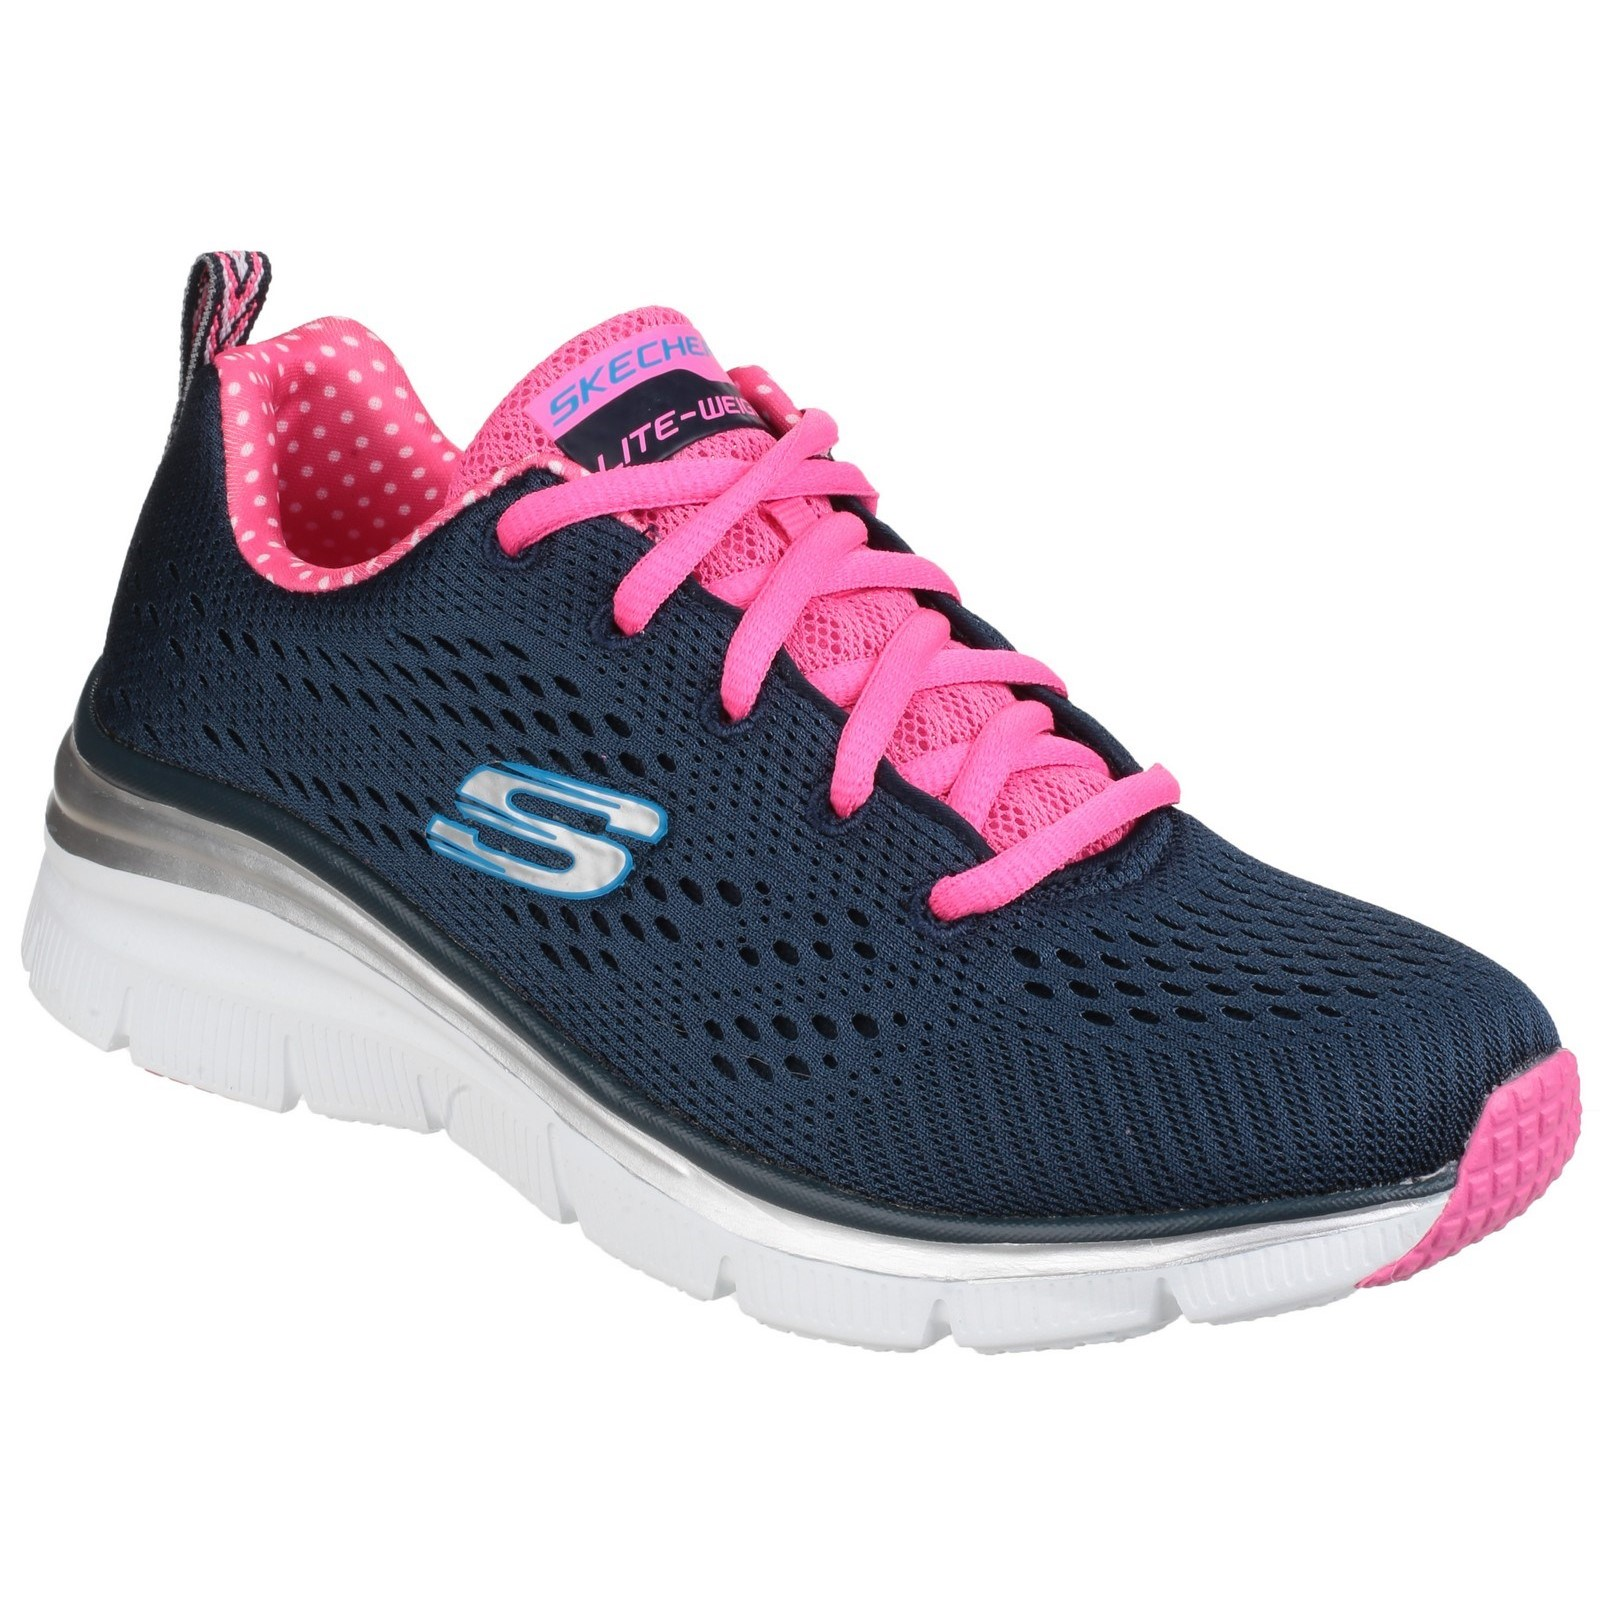 Skechers Womens Fashion Fit Statement Piece Trainer Navy Pink Size UK 5 EU 38